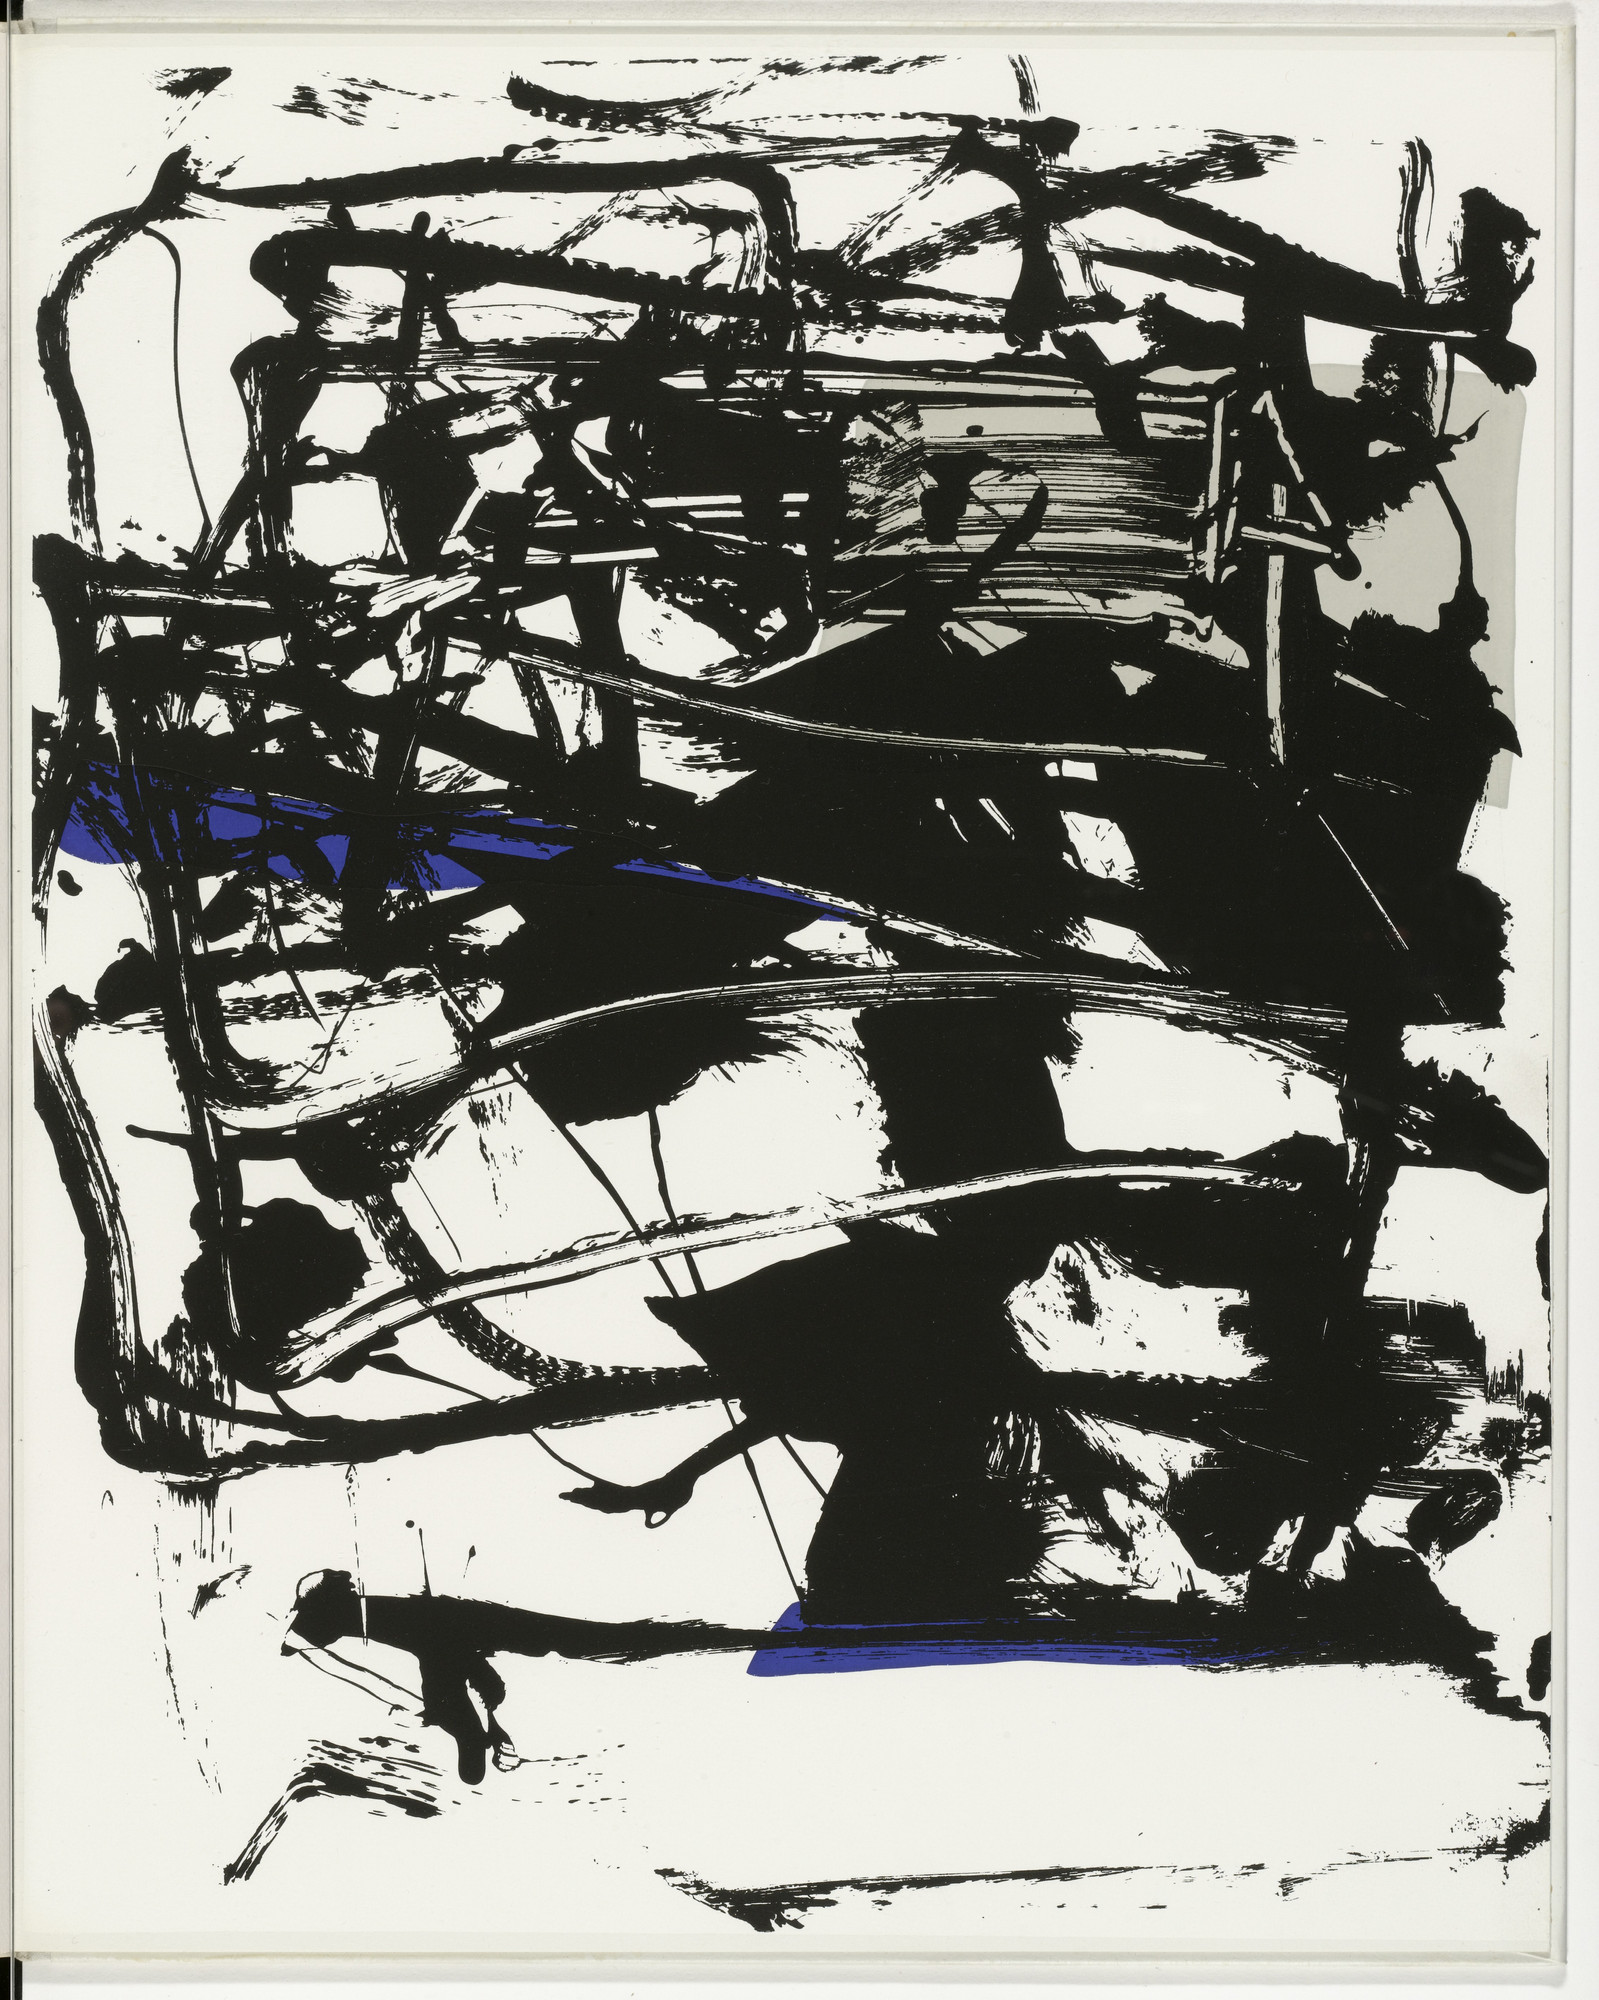 Joan Mitchell. Plate (folio 16) from The Poems. 1960